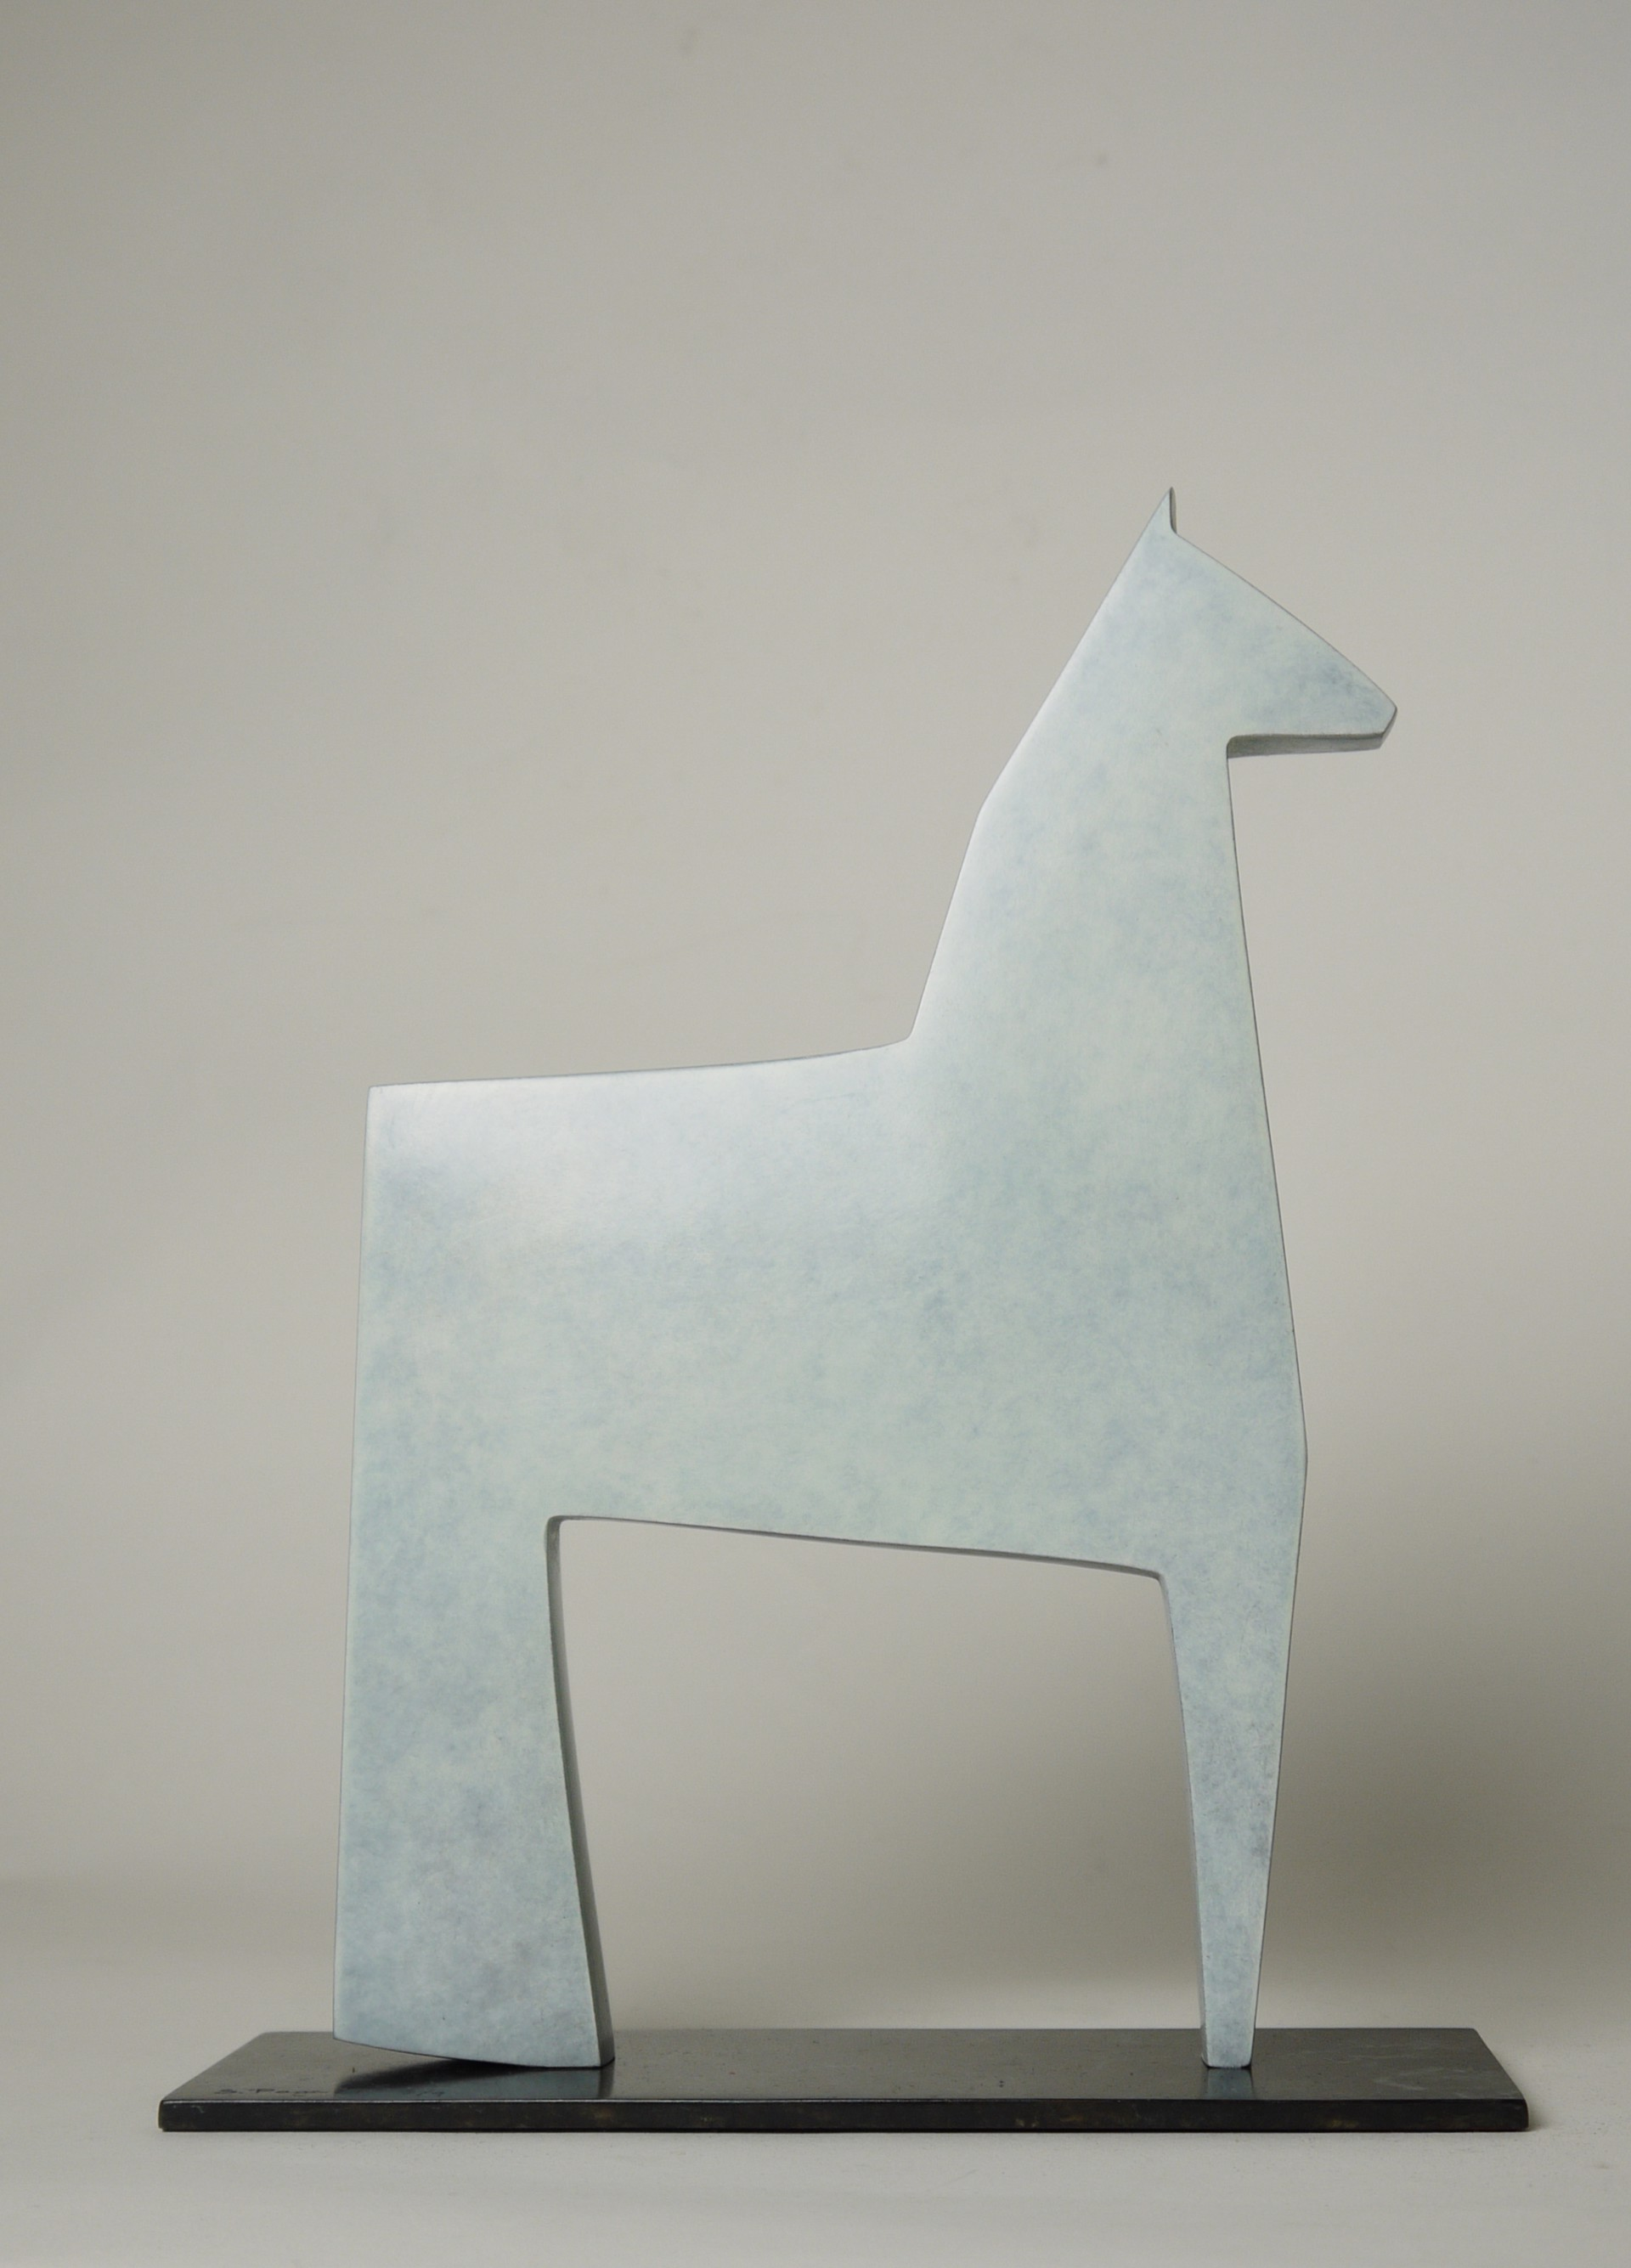 Whitehorse by Stephen Page